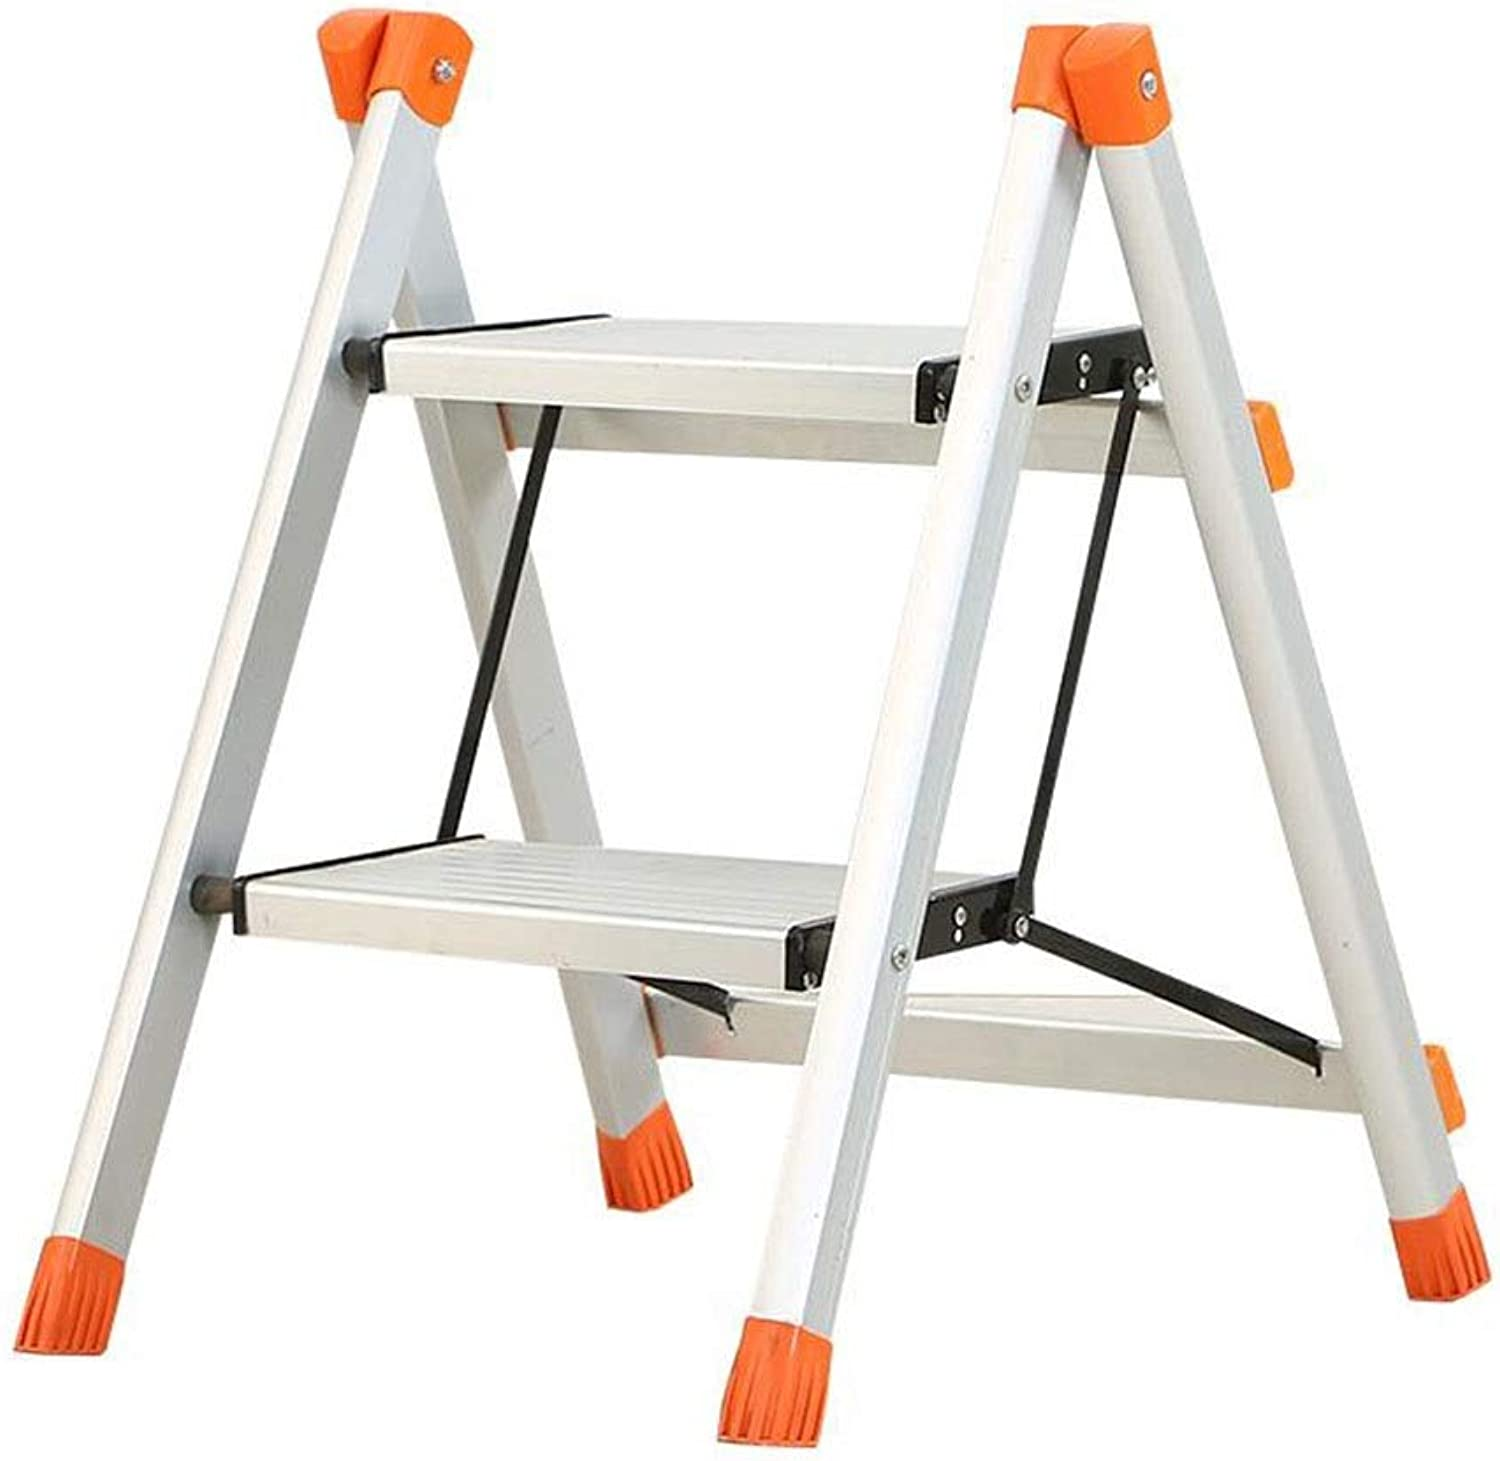 Stools Step Stool New Aluminum Alloy Folding Ladder Stool Home Indoor Stairs Two Steps Thick Step Step Ladder Kitchen Courtyard Factory Supermarket Climb Ladder ( color   Silver , Size   575339cm )